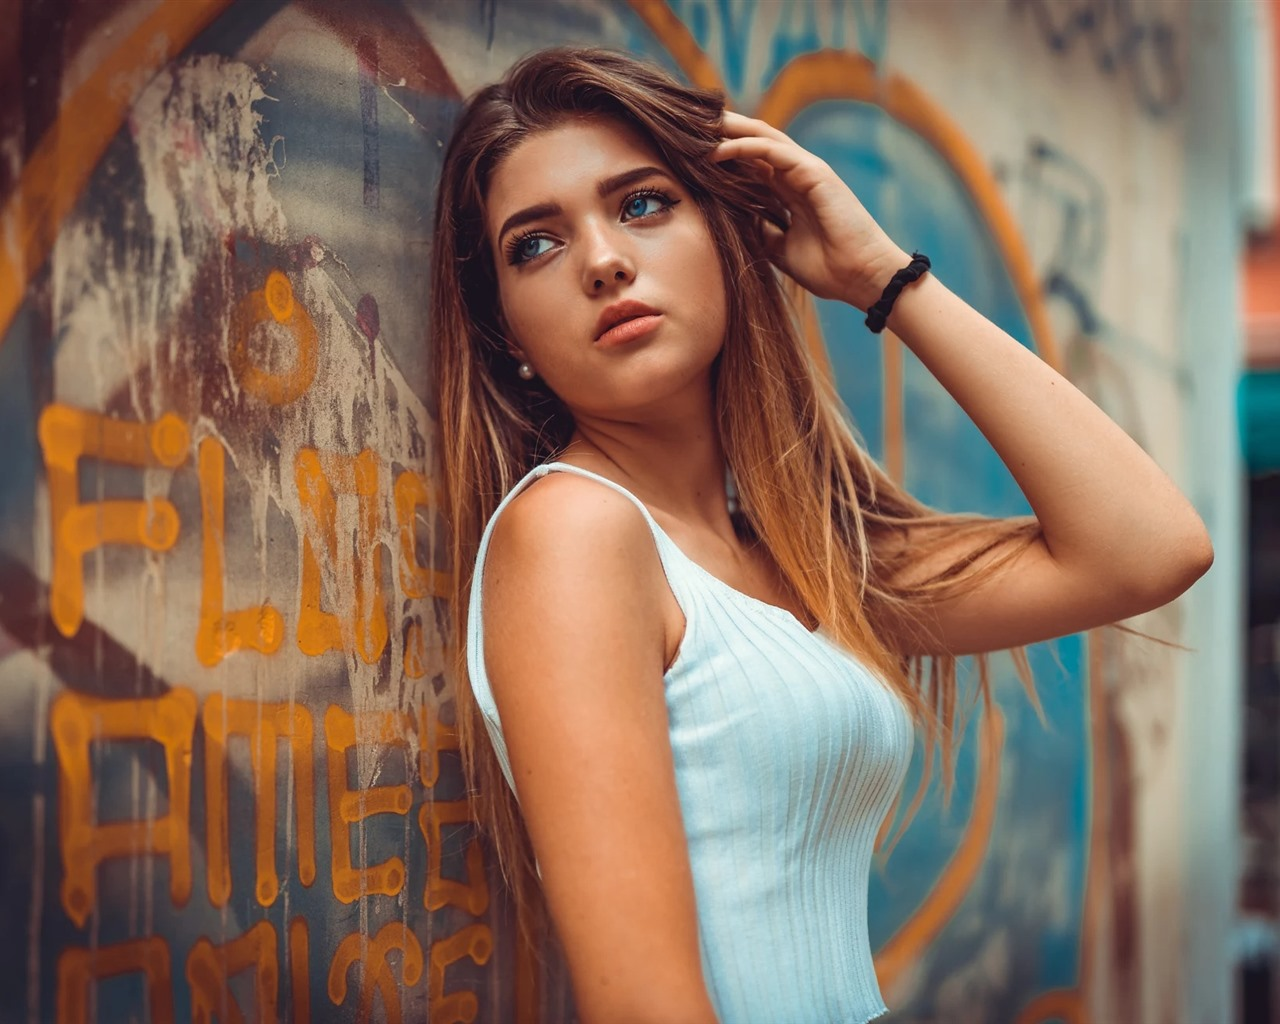 Wallpaper Brown Hair Girl Blue Eyes Graffiti Wall 1920x1200 Hd Picture Image